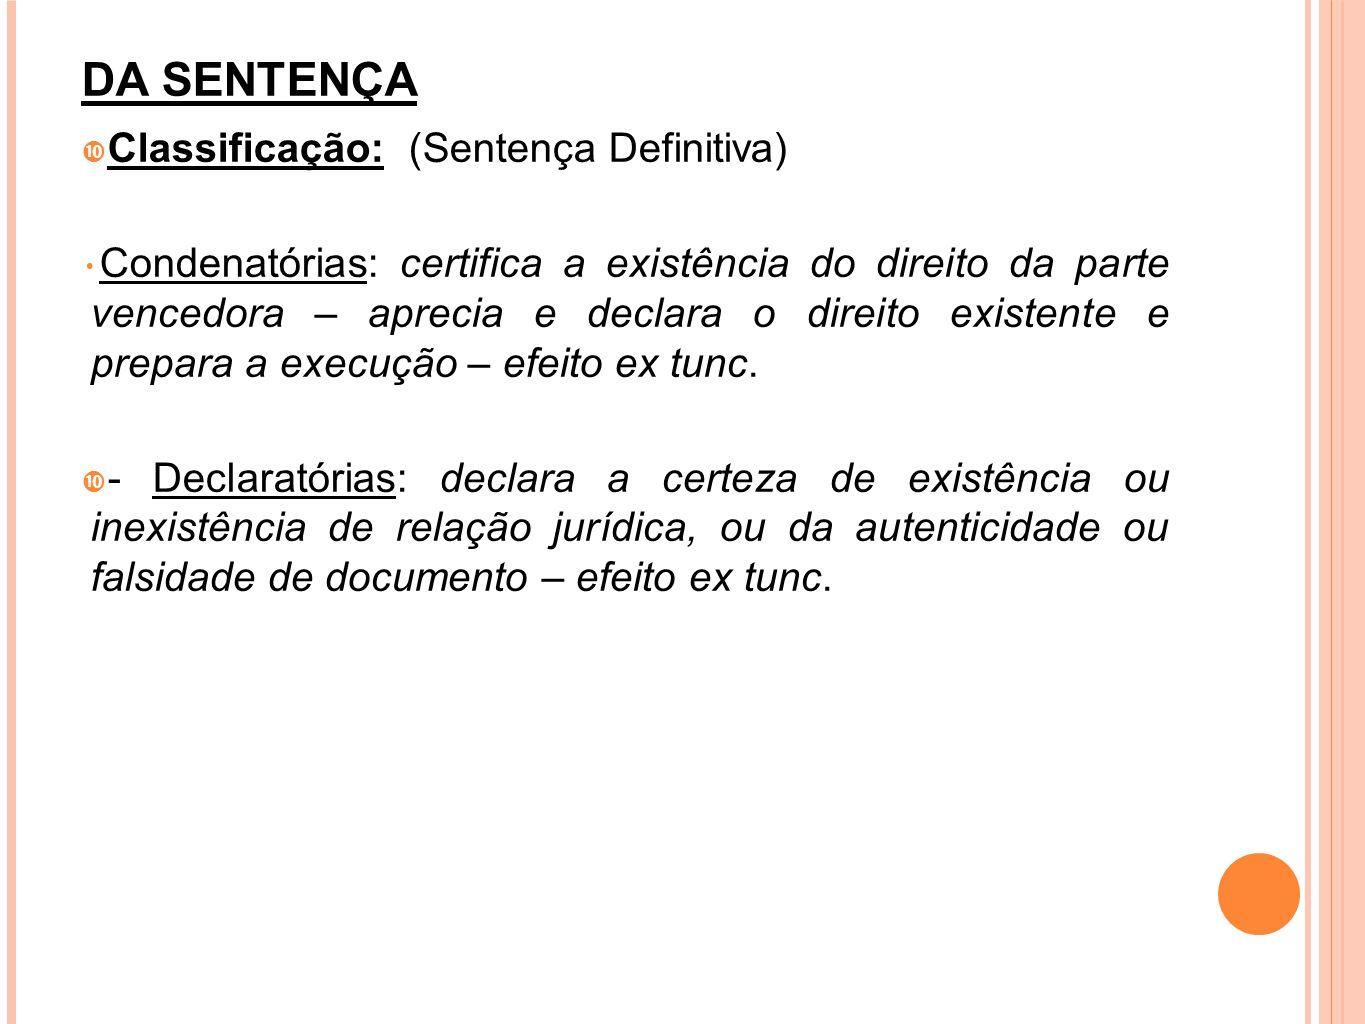 DA SENTENÇA Classificação: (Sentença Definitiva)